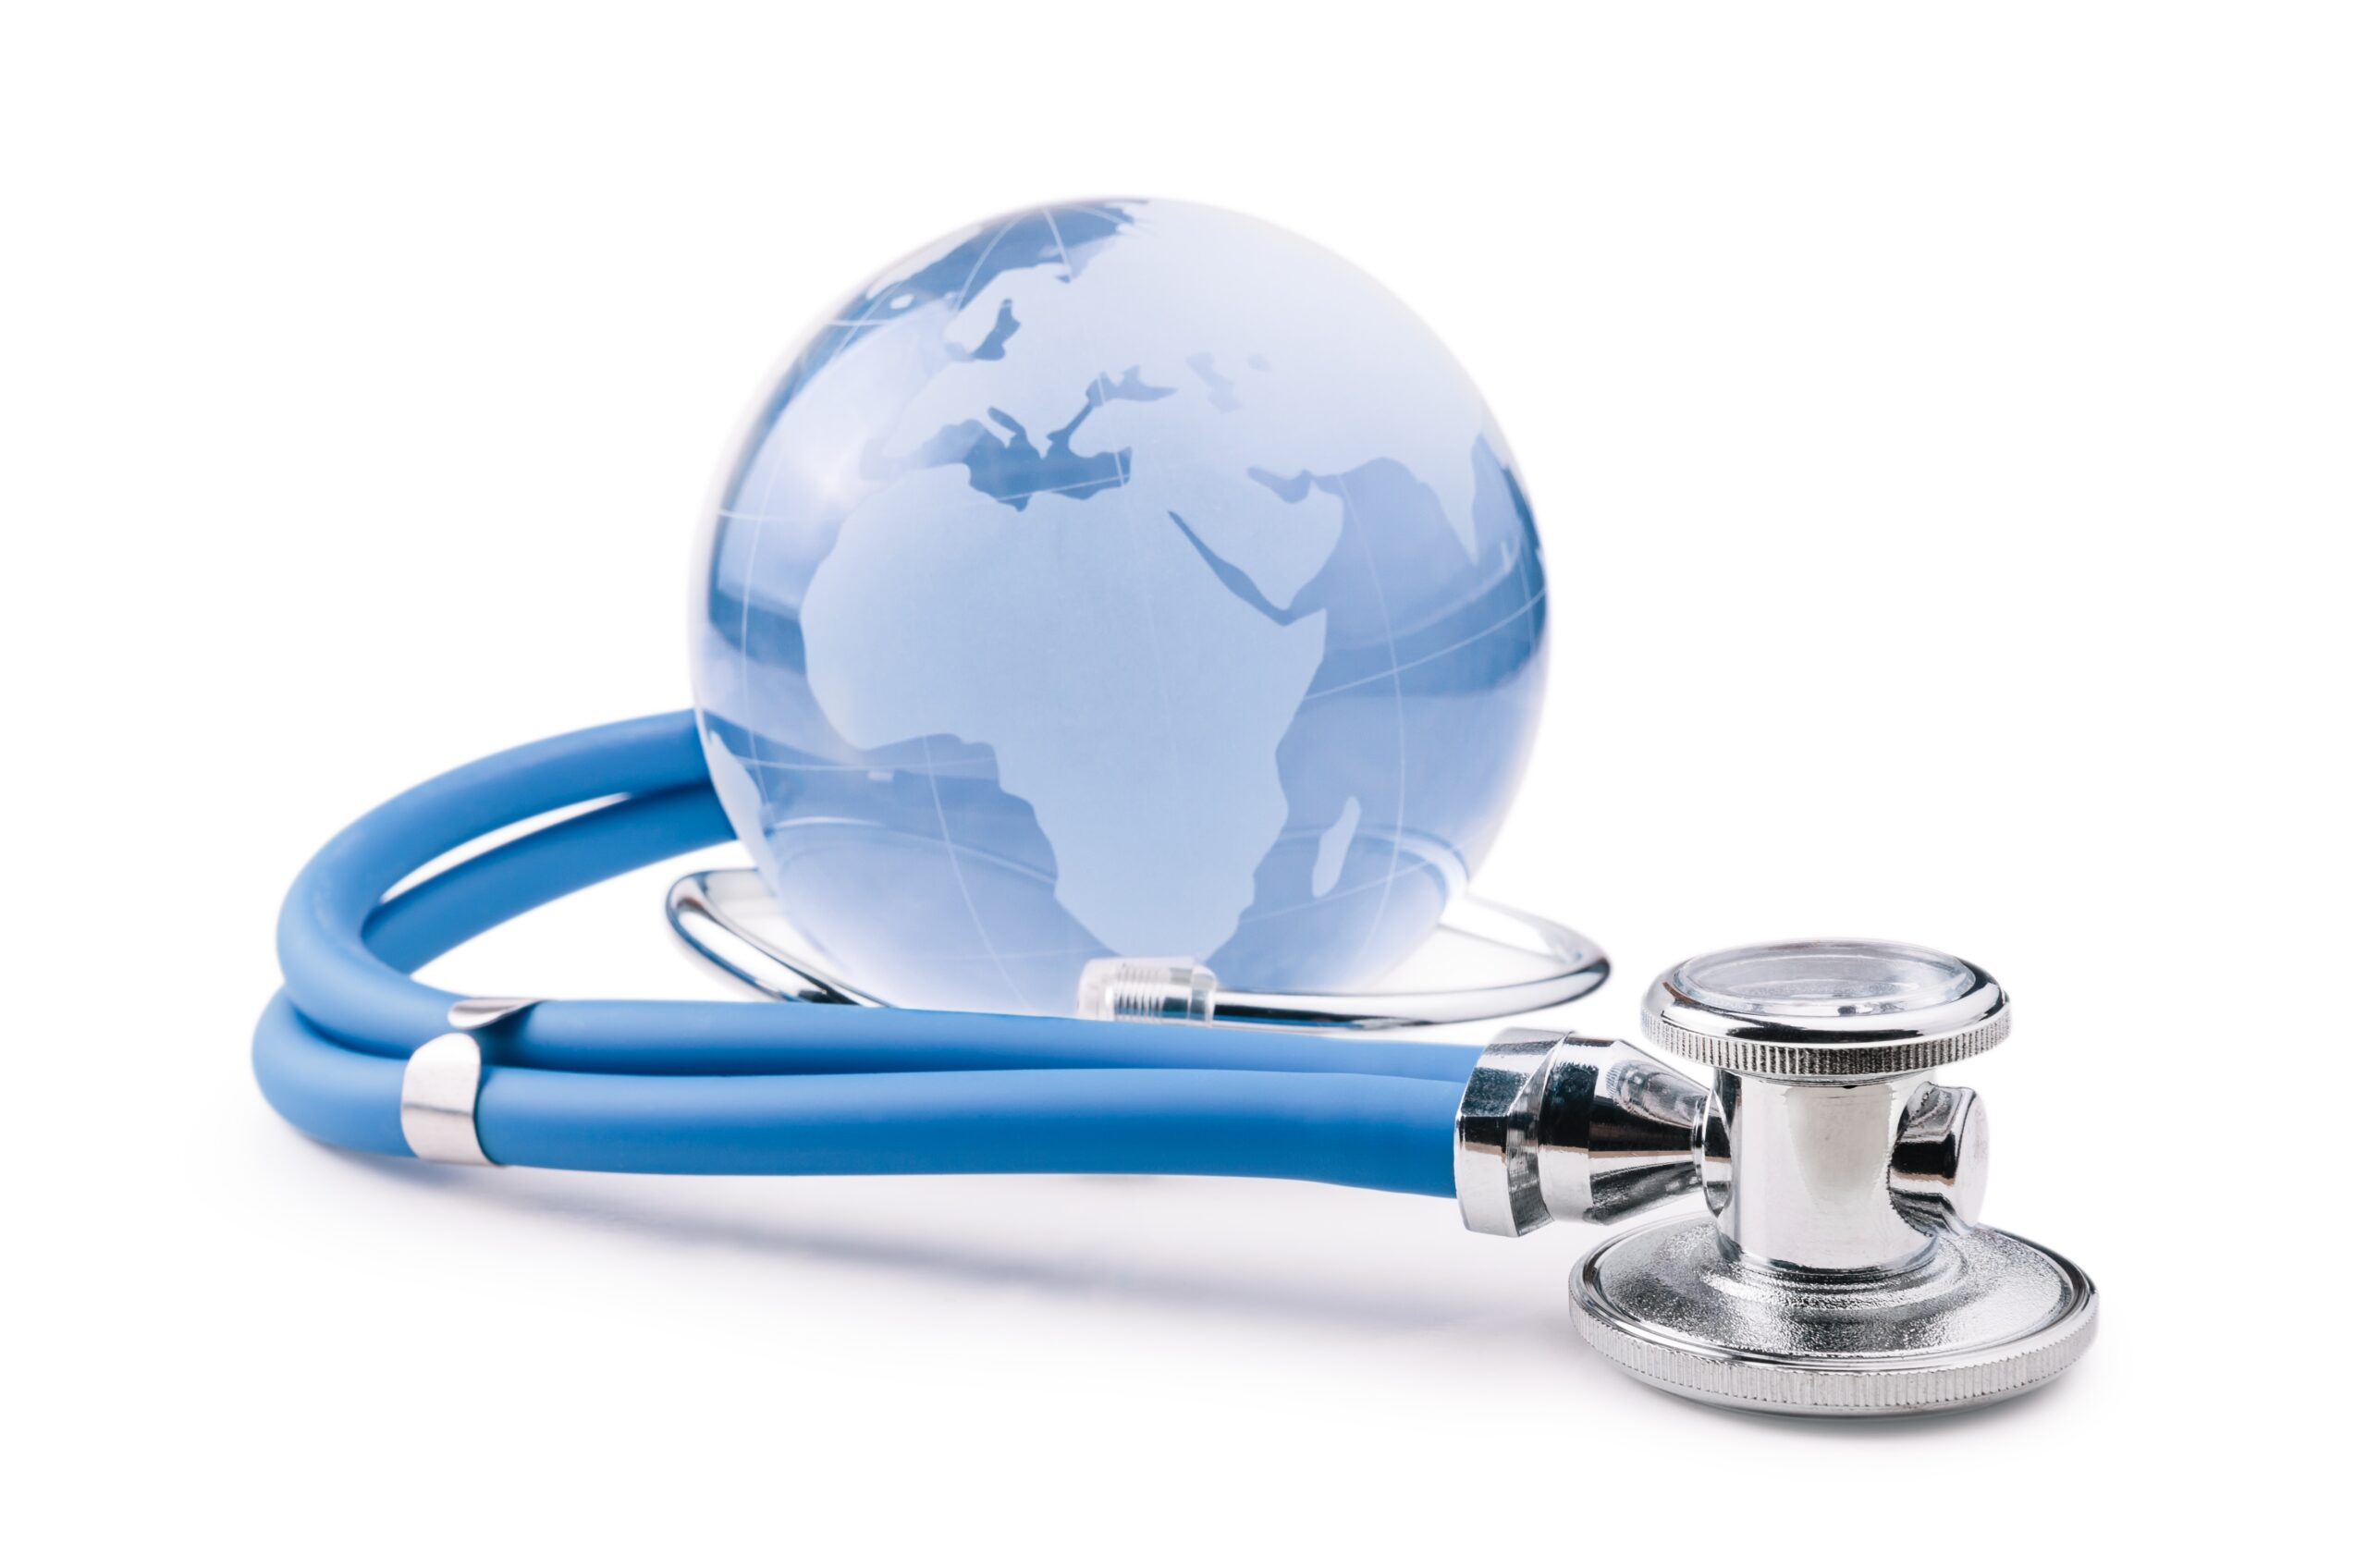 Fitter and faster: better health and growth in emerging economies (WP1699)